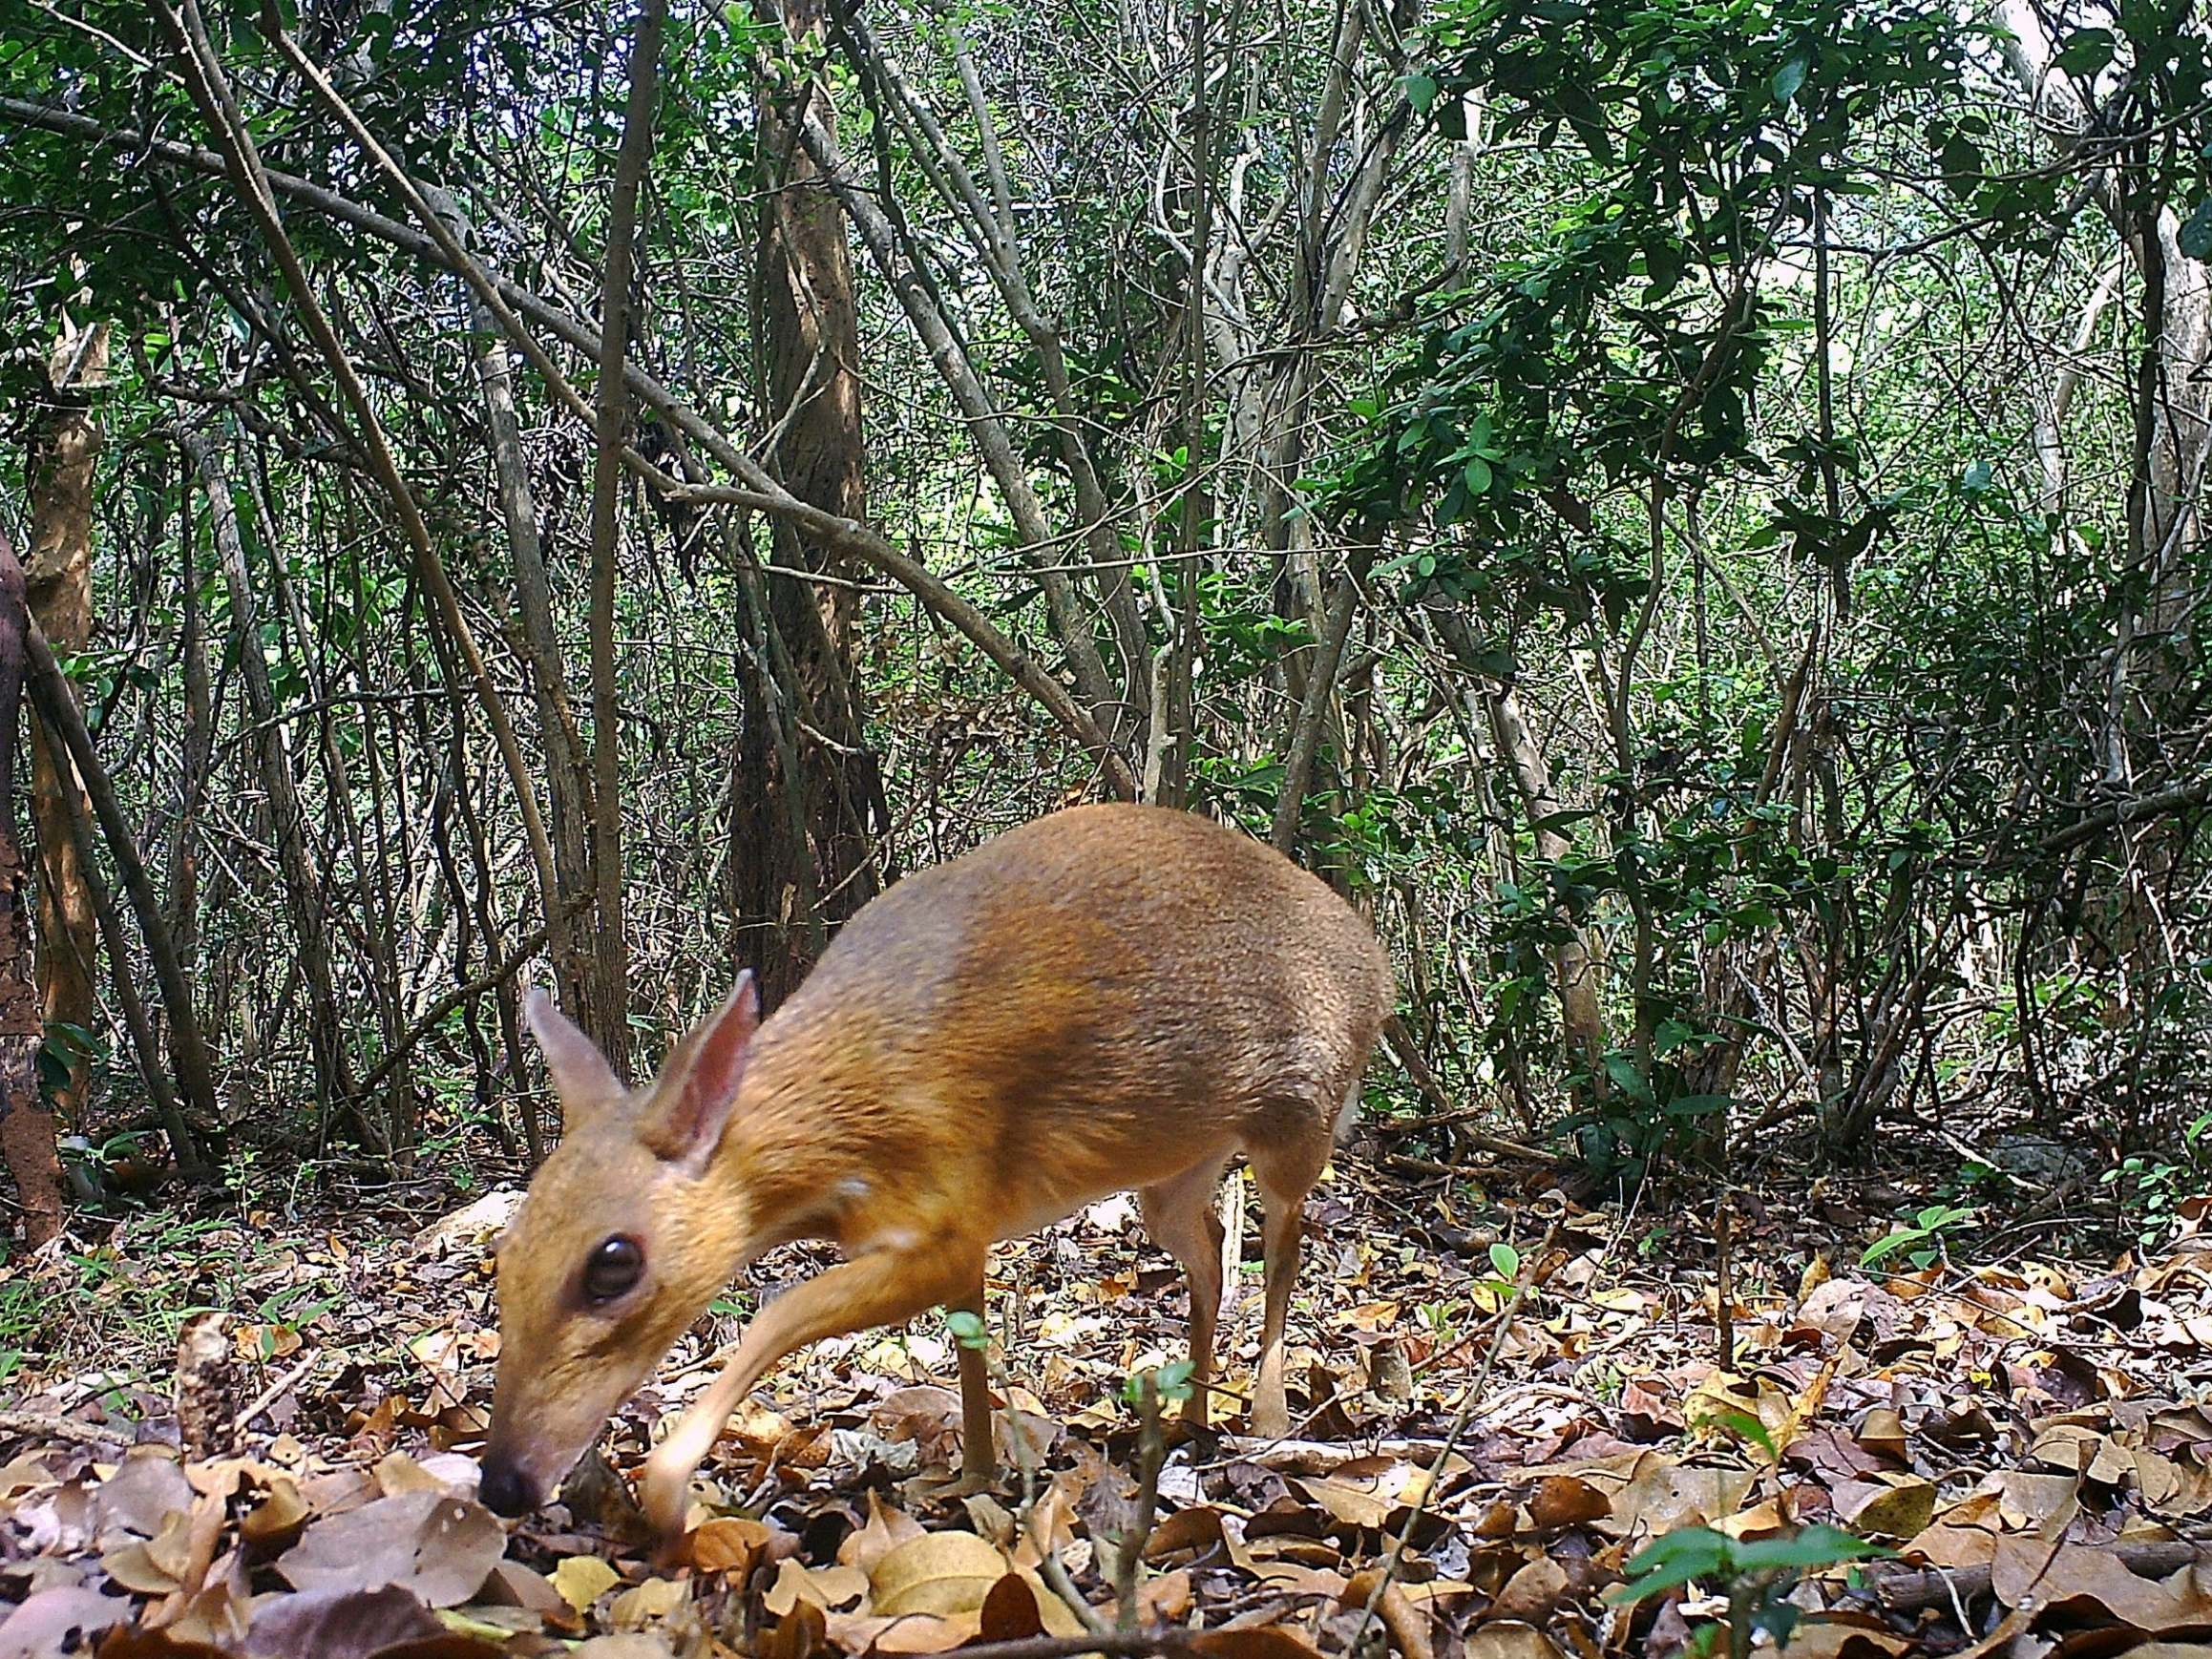 'Extinct' deer small enough to hold in one hand reappears in wild, giving hope for other endangered species